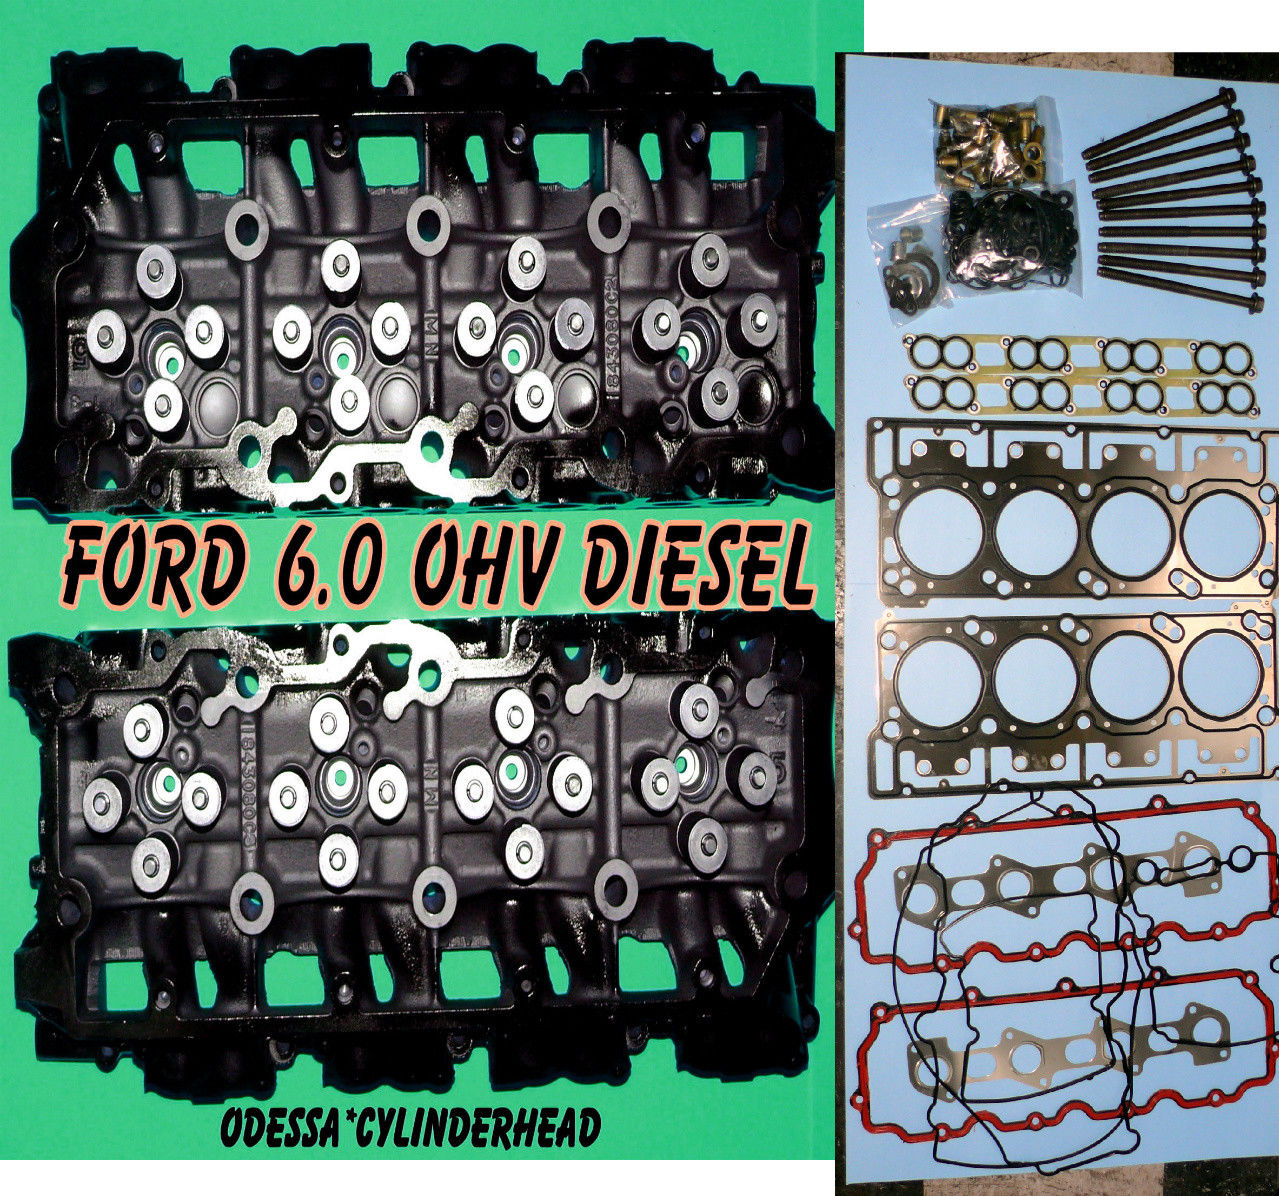 NEW 2 FORD 6.0 TURBO SEL F350 TRUCK CYLINDER HEADS 18MM CAST #080 BOLT Aftermarket Jeep Cylinder Head on